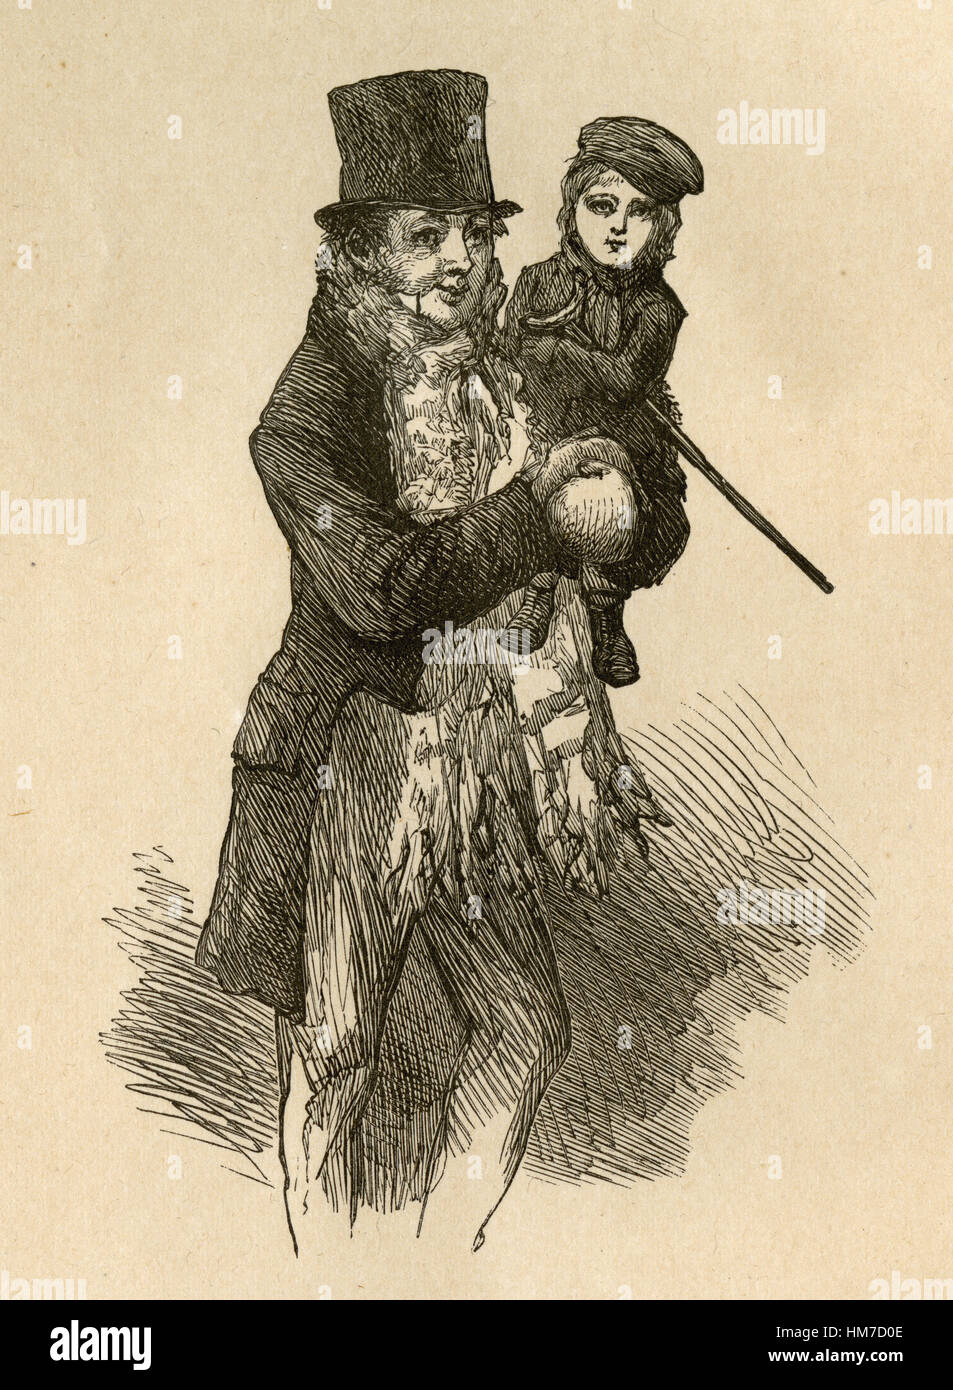 Tiny Tim A Christmas Carol.1870 Engraving From A Christmas Carol By Charles Dickens